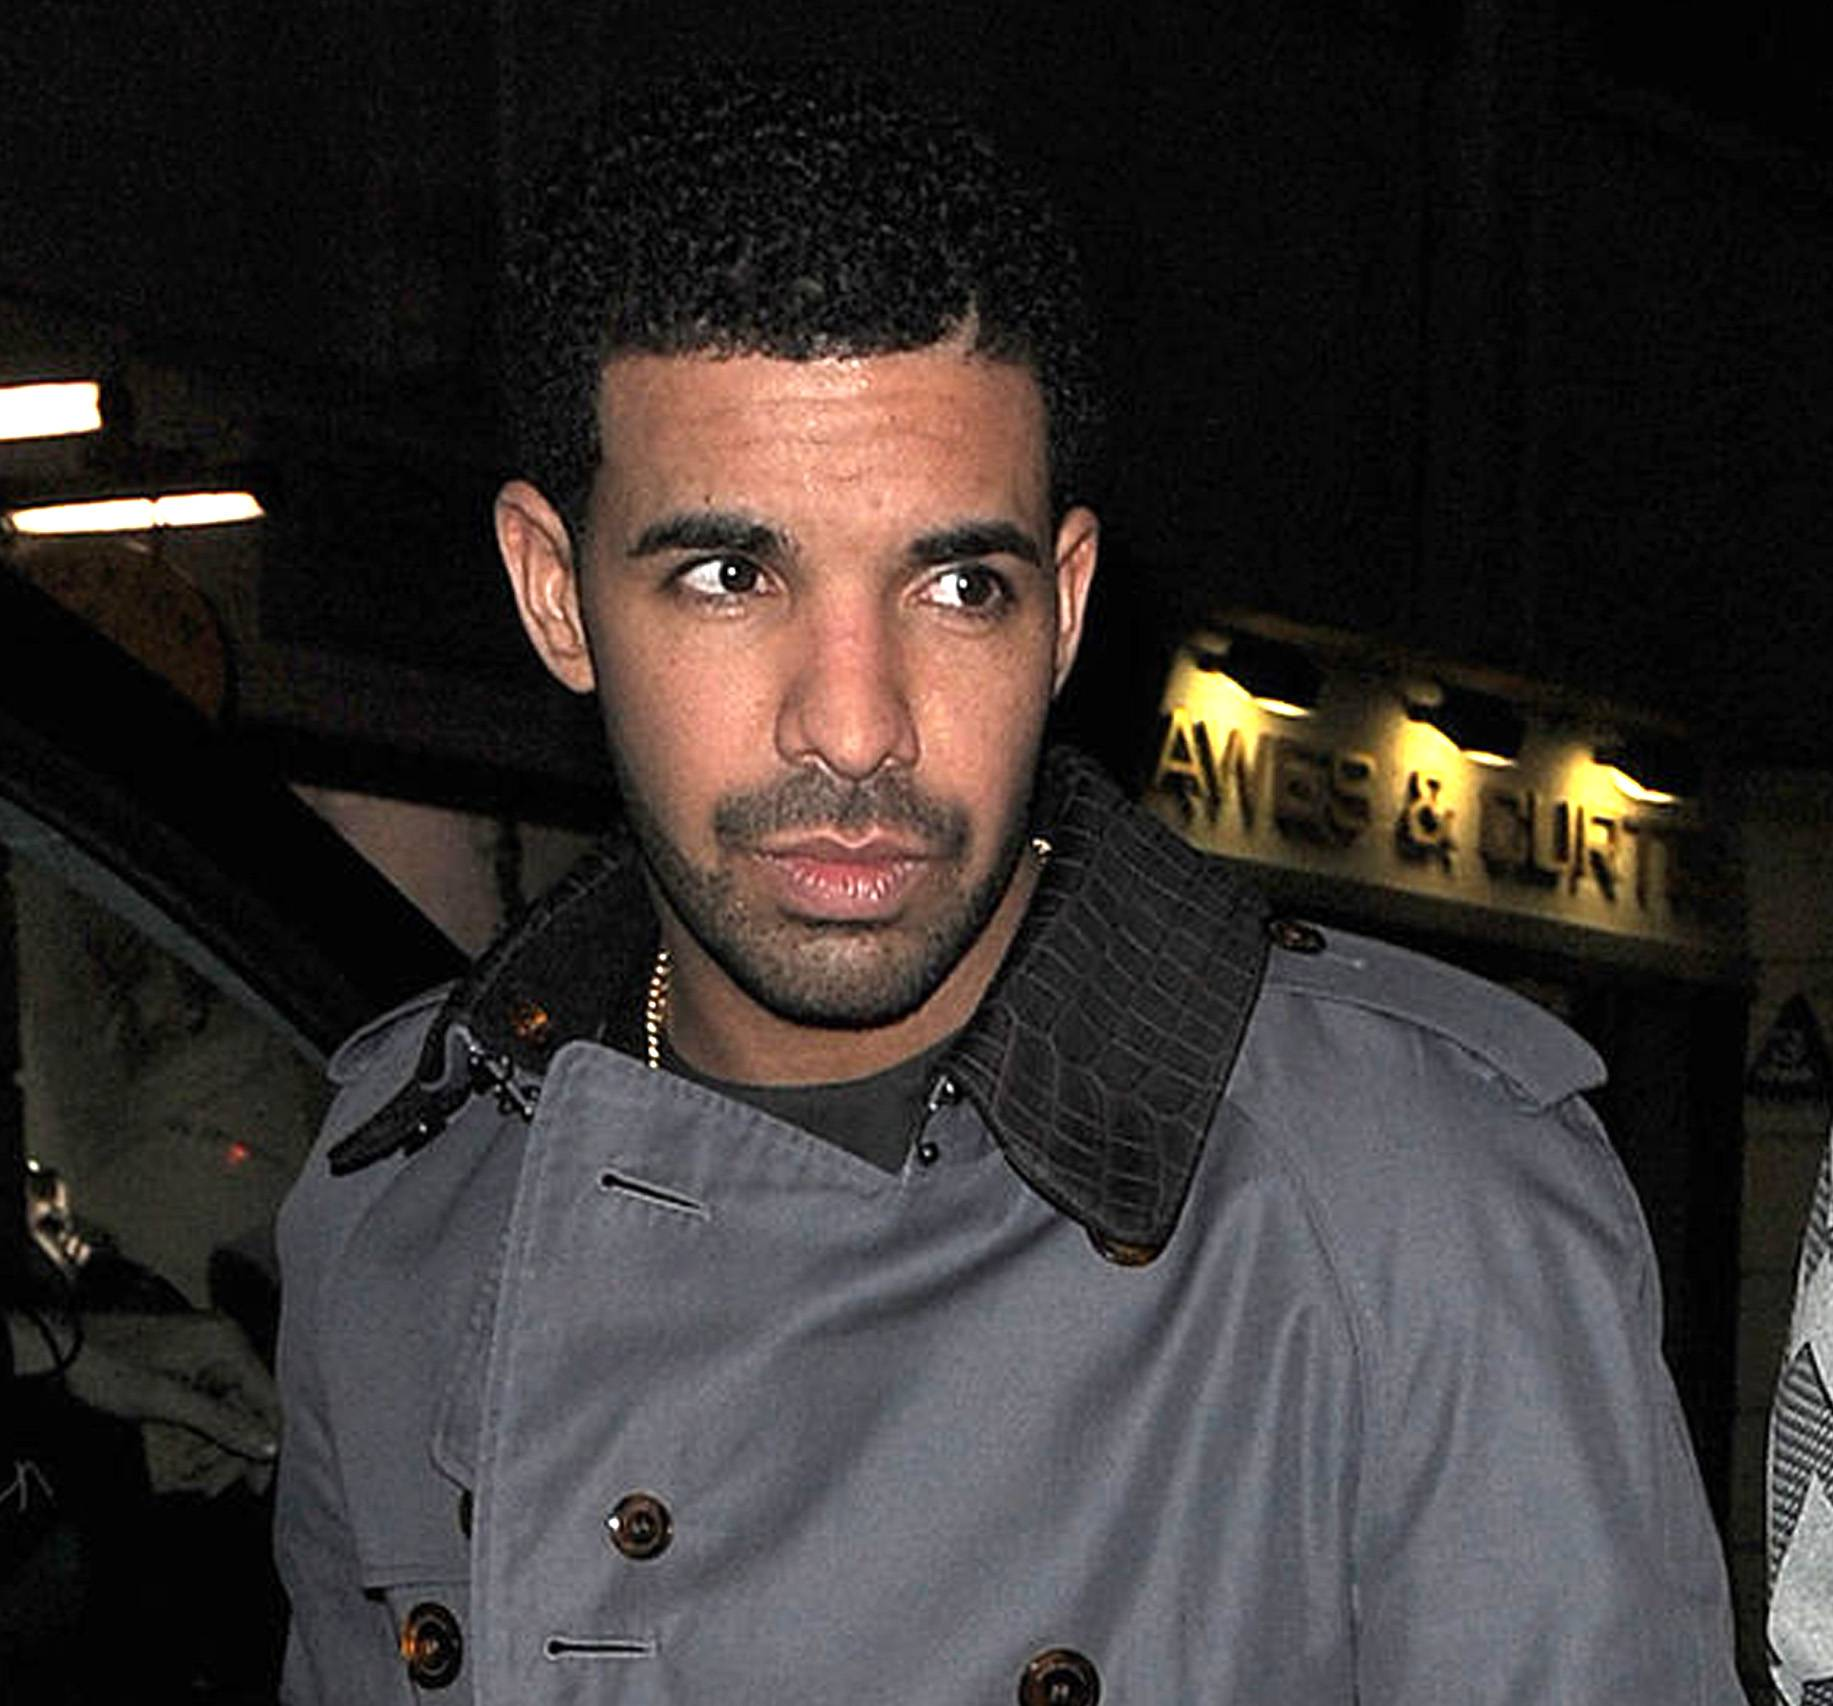 """Drake Flips Out on Rolling Stone Magazine - Drizzy went in onRolling Stoneforprintinga diss made """"off the record"""" about Kanye Westduring his feature story interview. He was also mad that he didn't get the cover of the publication that month.Tweet: """"I'm done doing interviews for magazines. I just want to give my music to the people. That's the only way my message gets across accurately.""""(Photo: Will Alexander/WENN.com)"""